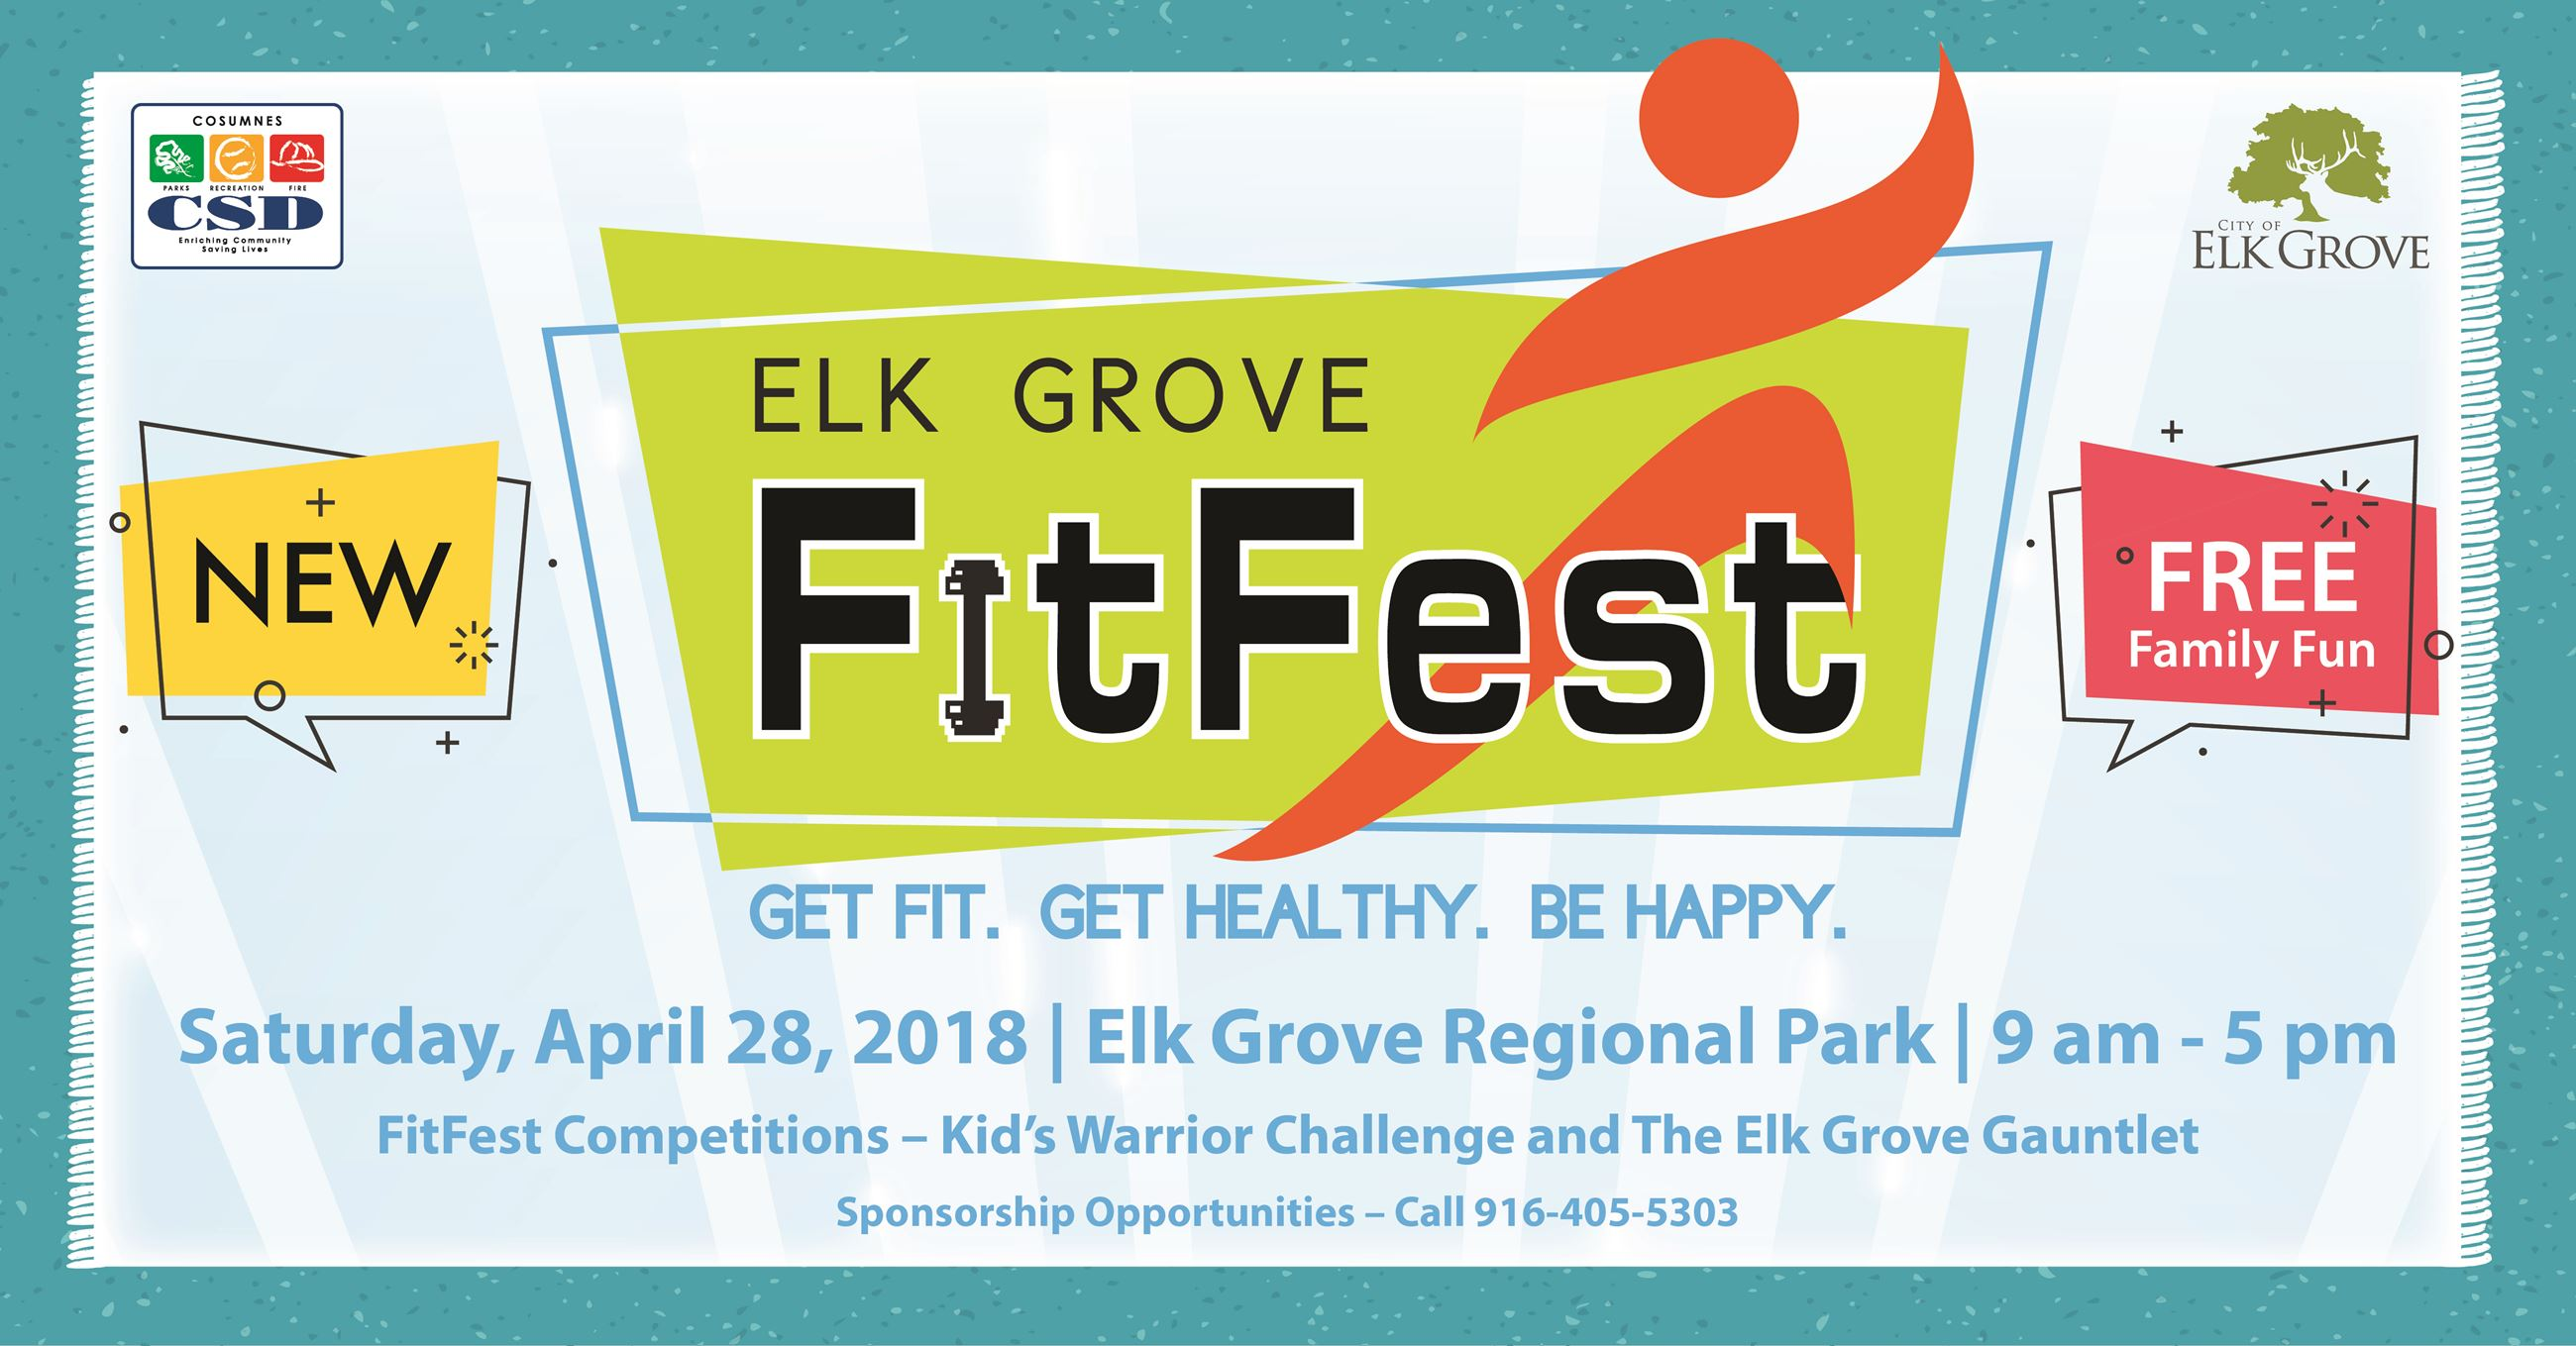 Elk Grove FitFest Ad